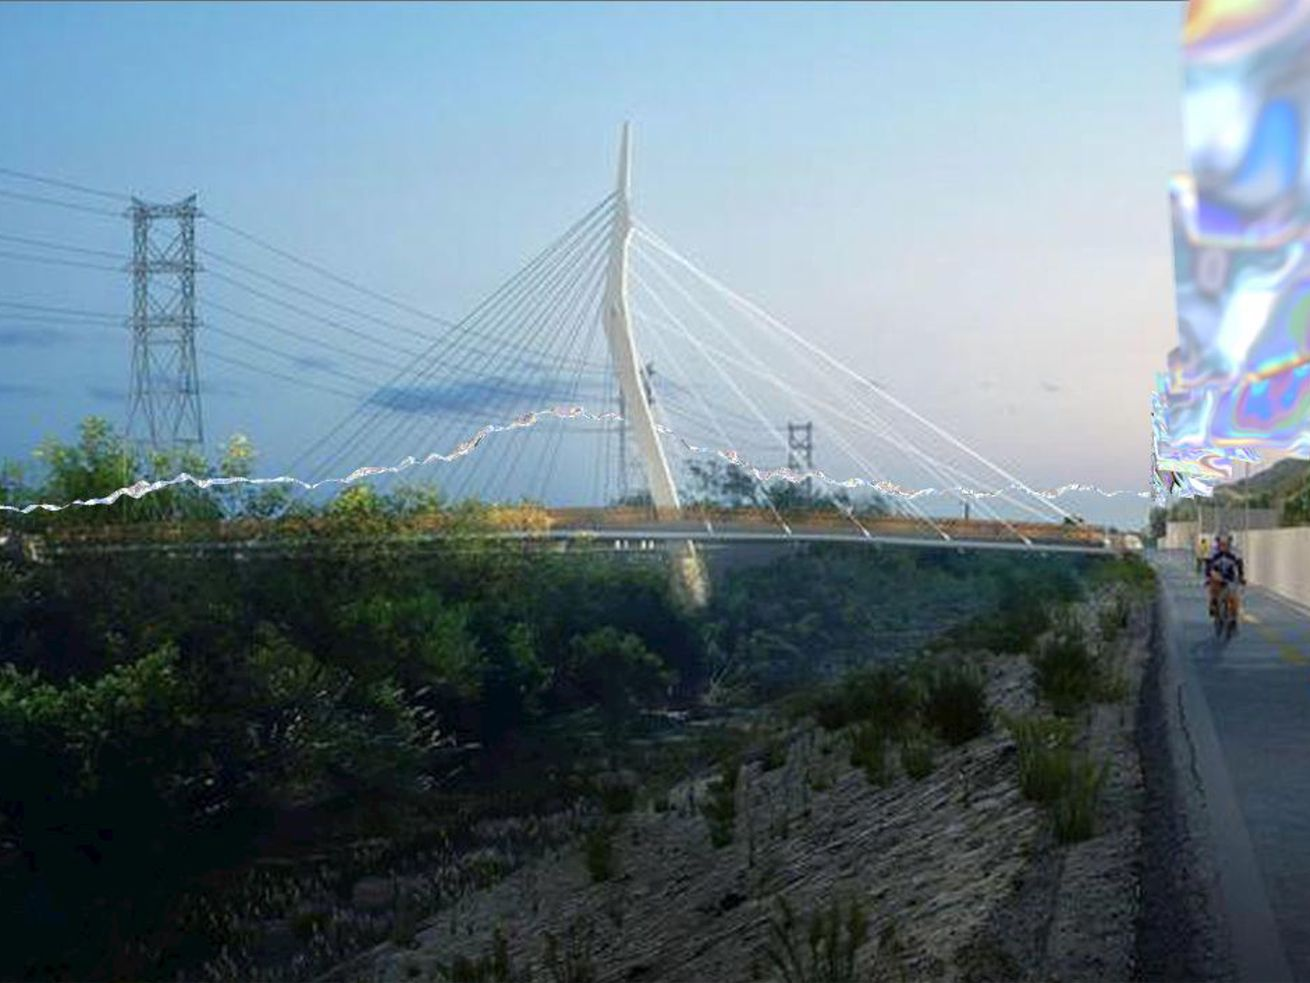 Conceptual imagery for a possible riverside public art project, referred to as LA River Skynets. The artist is seeking a site for the piece.